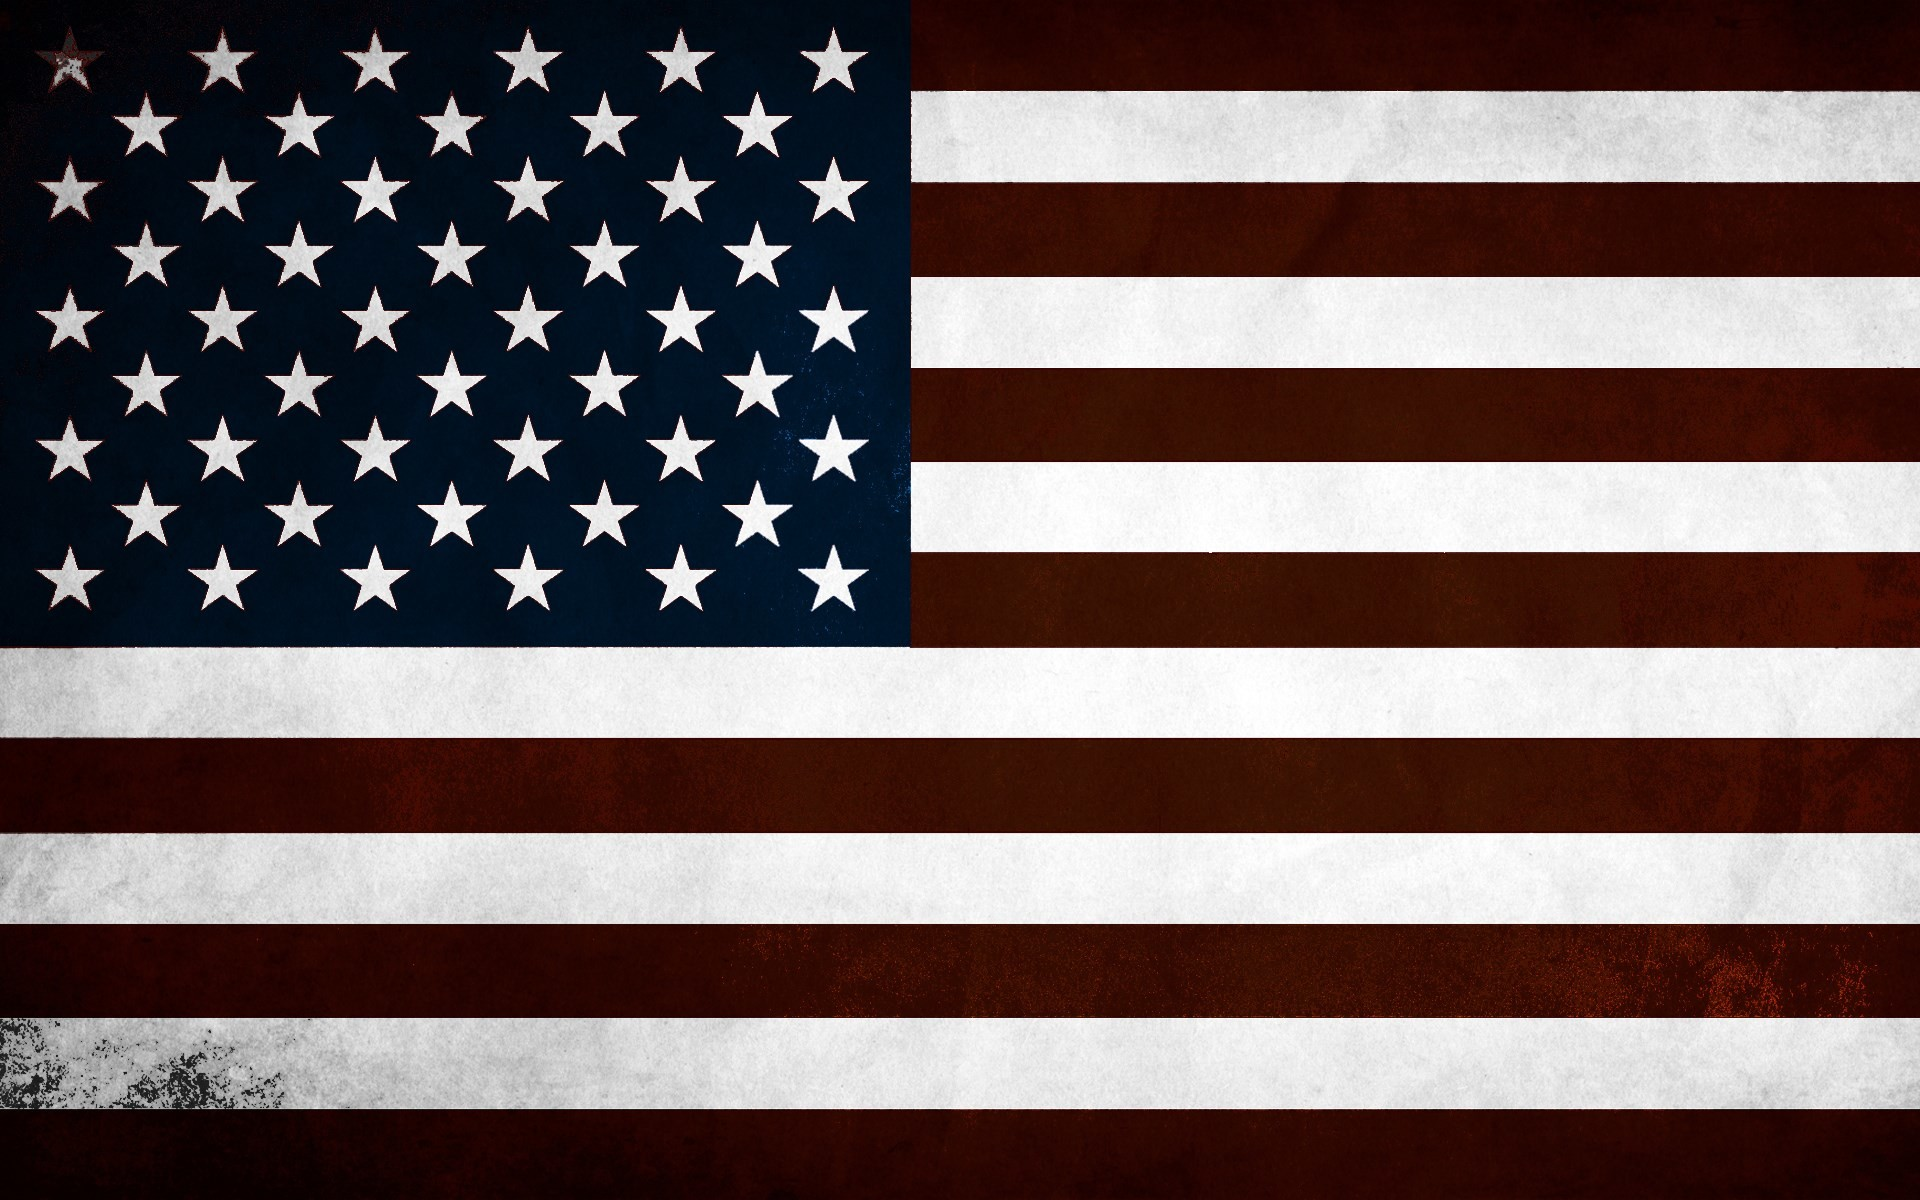 1920x1200 free computer wallpaper for american flag